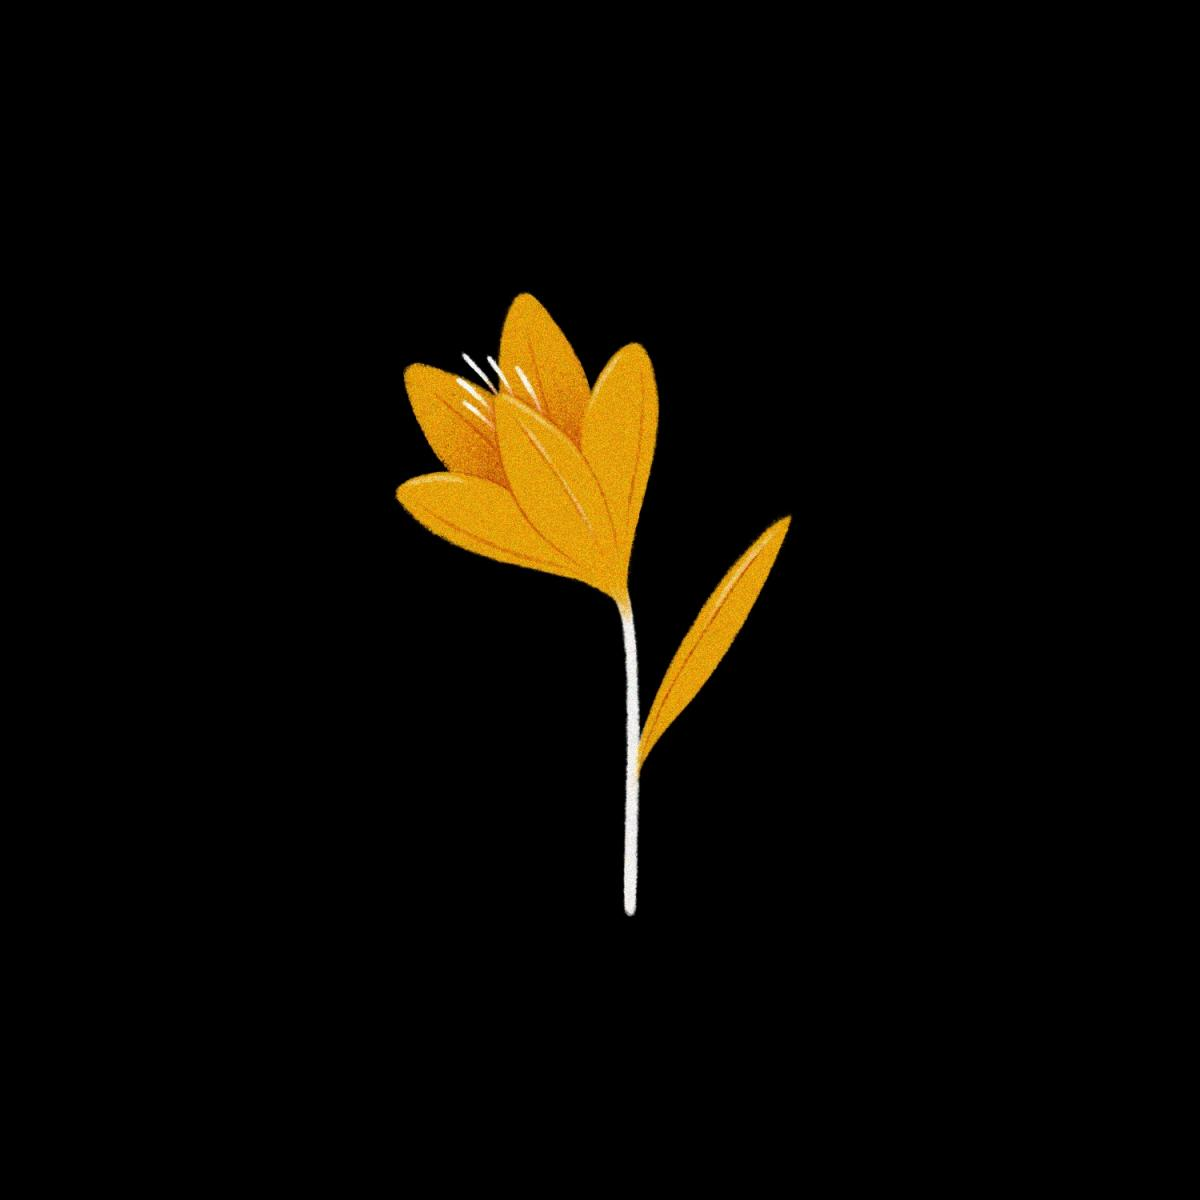 Artwork of yellow flower in black background by Maggie Chiang (Ryman '09)